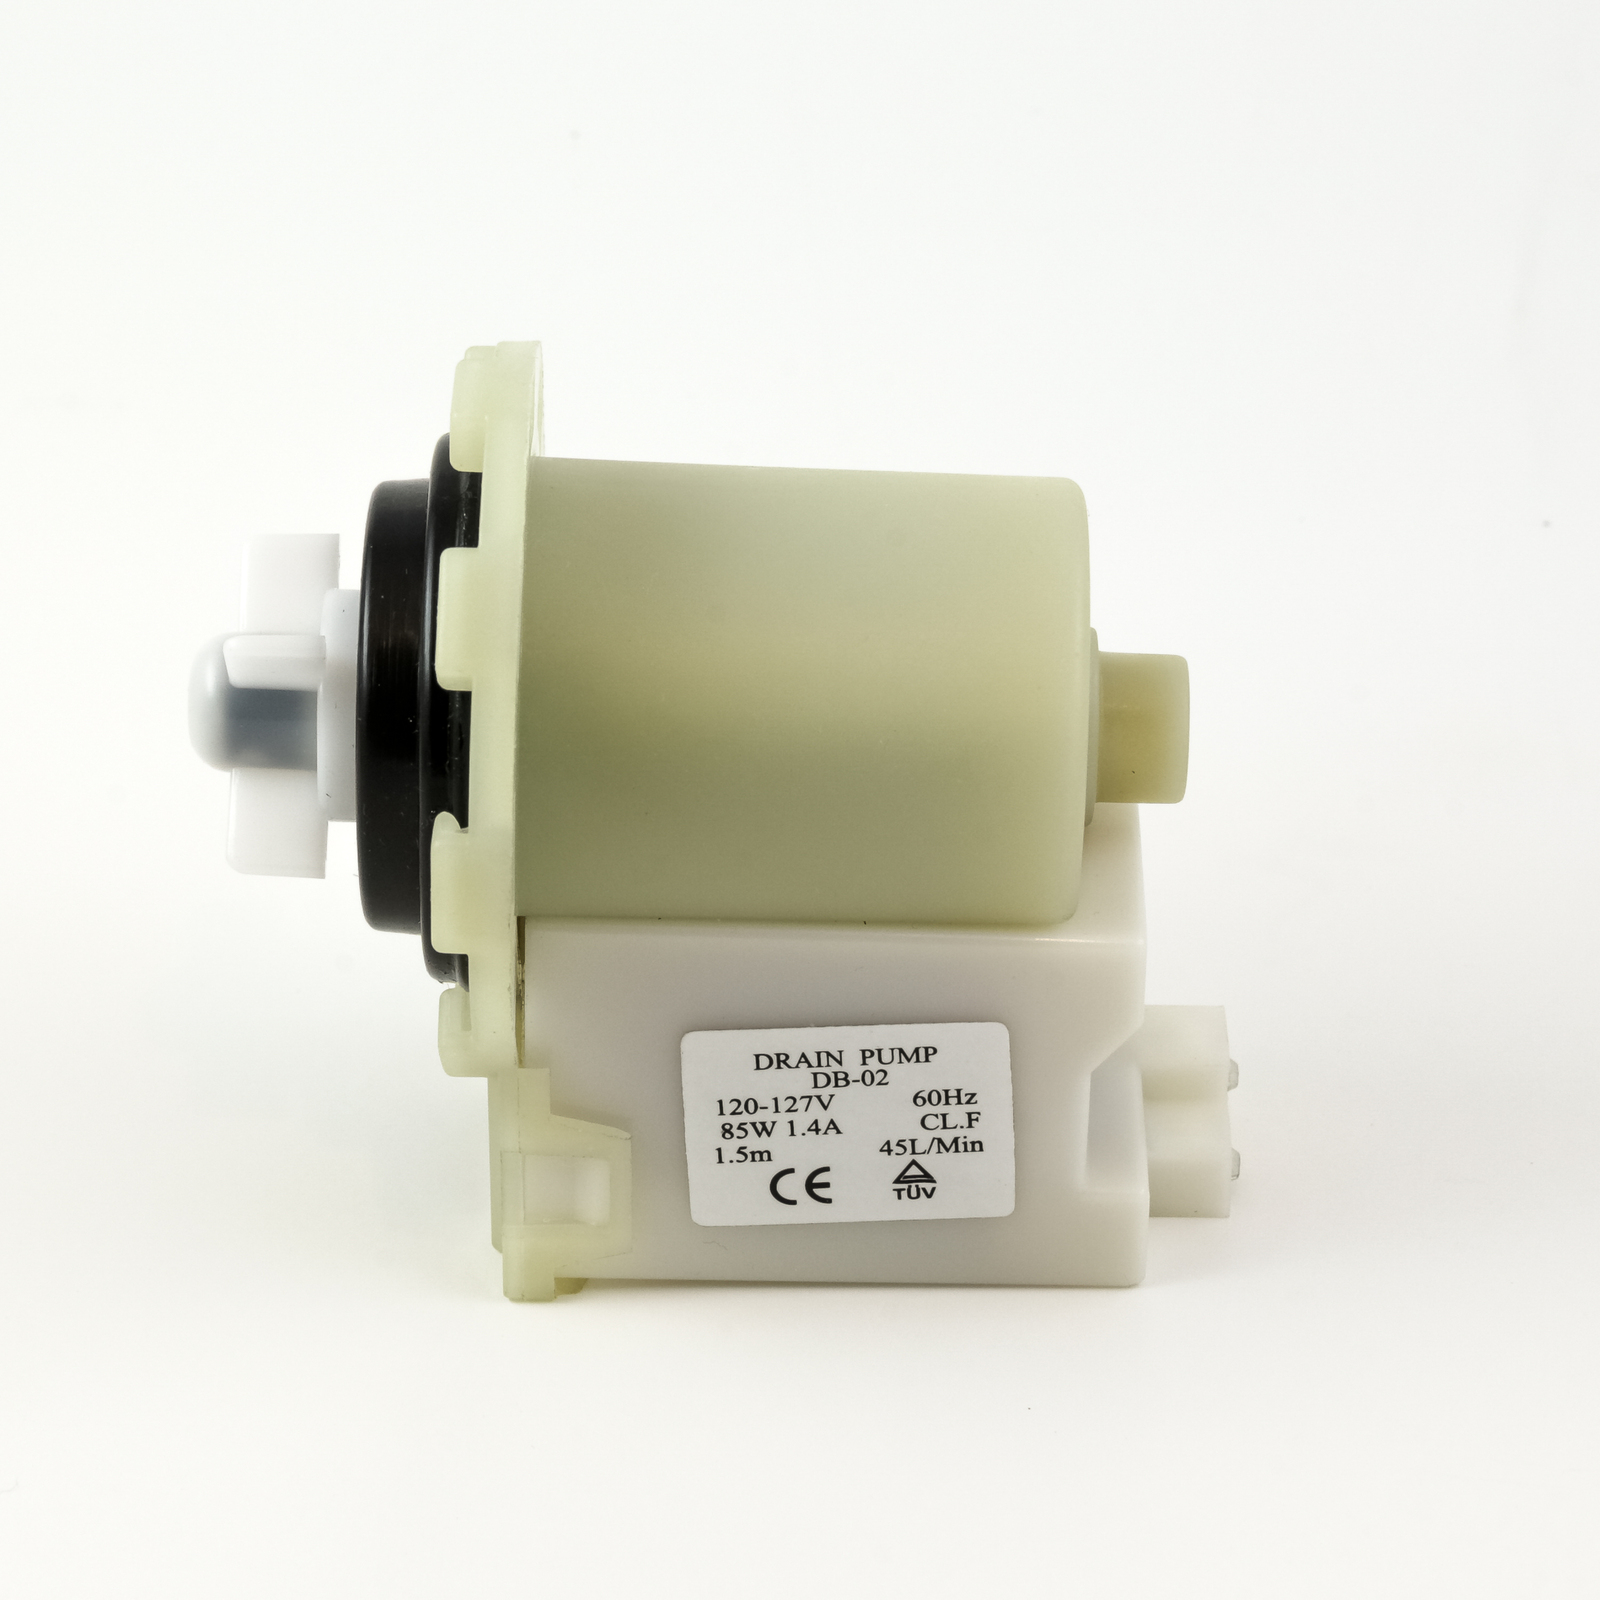 New replacement drain pump for kenmore whirlpool 8540024 for Kenmore washer motor replacement